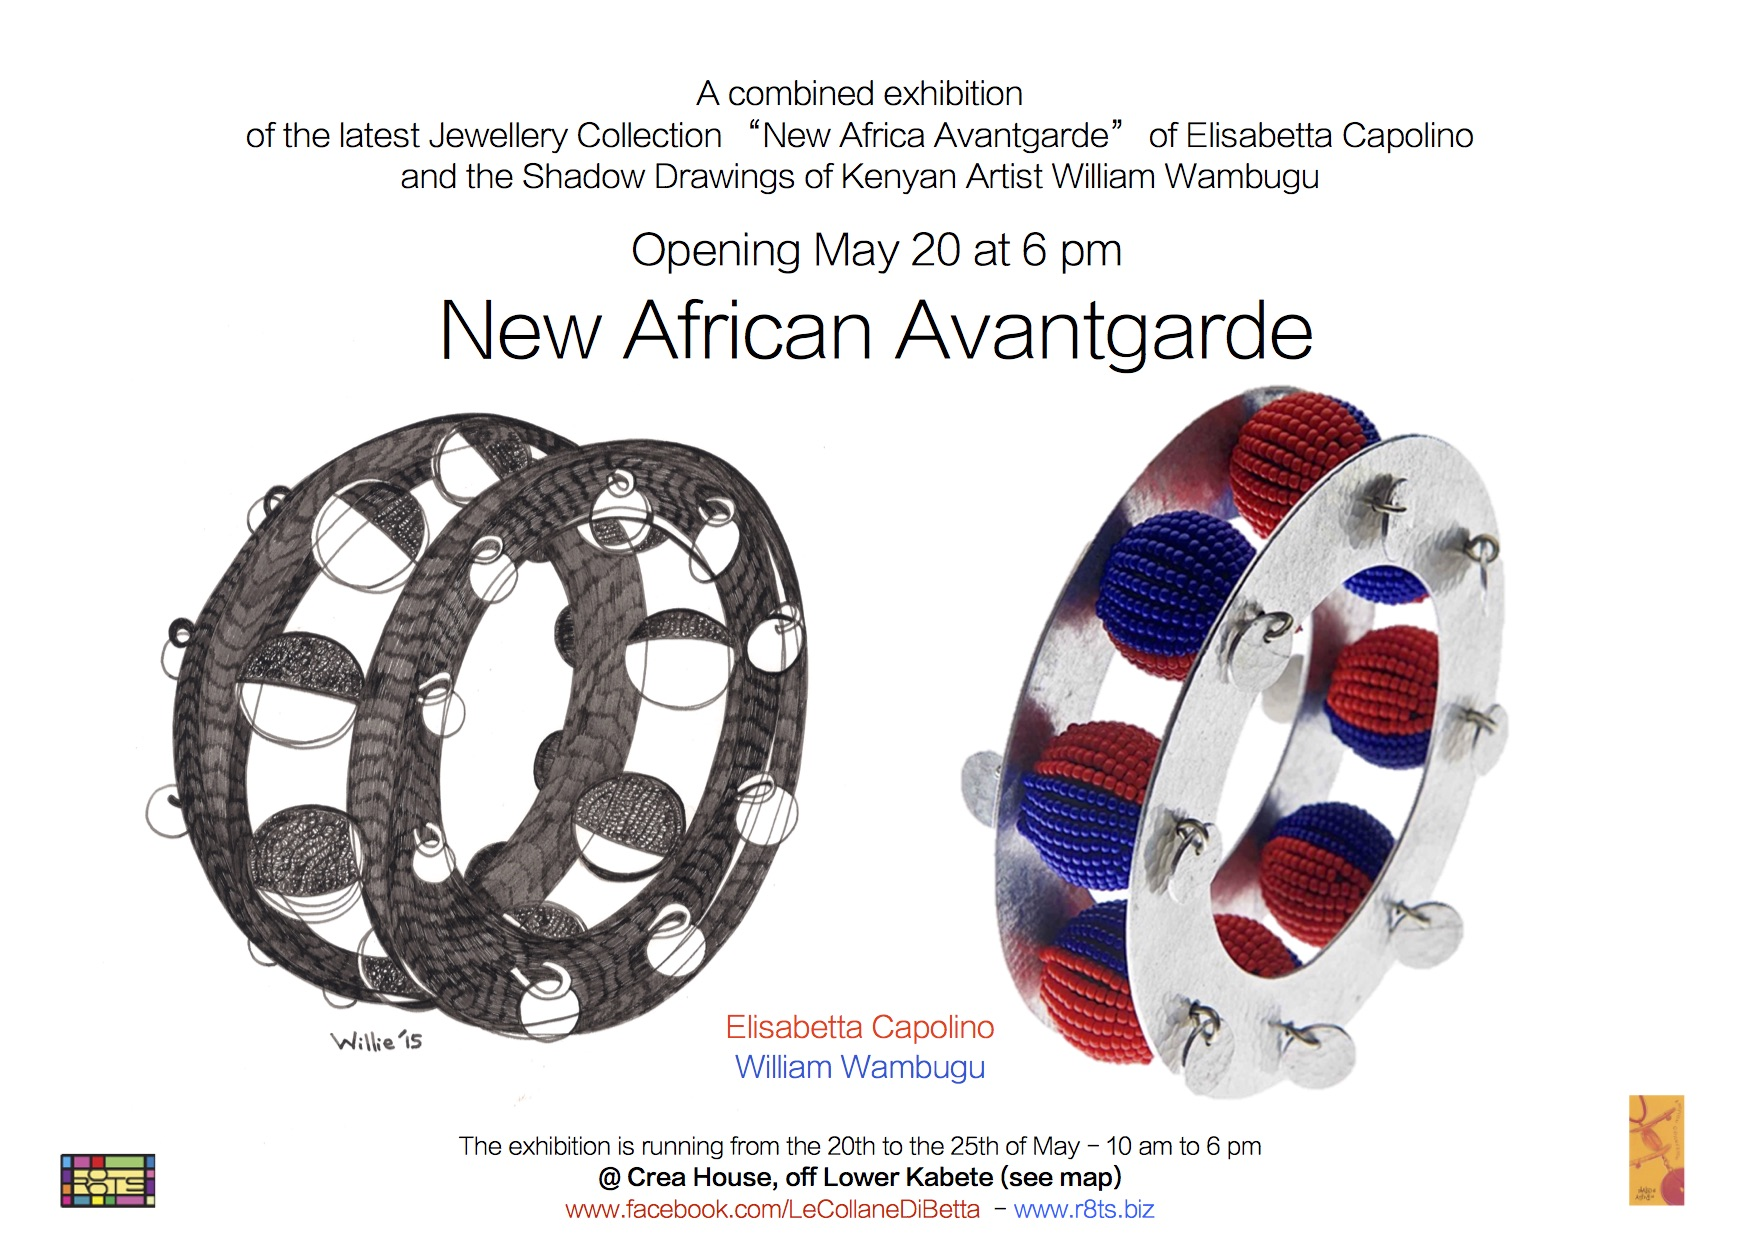 INVITATION New African Avantgarde Exibition.jpg